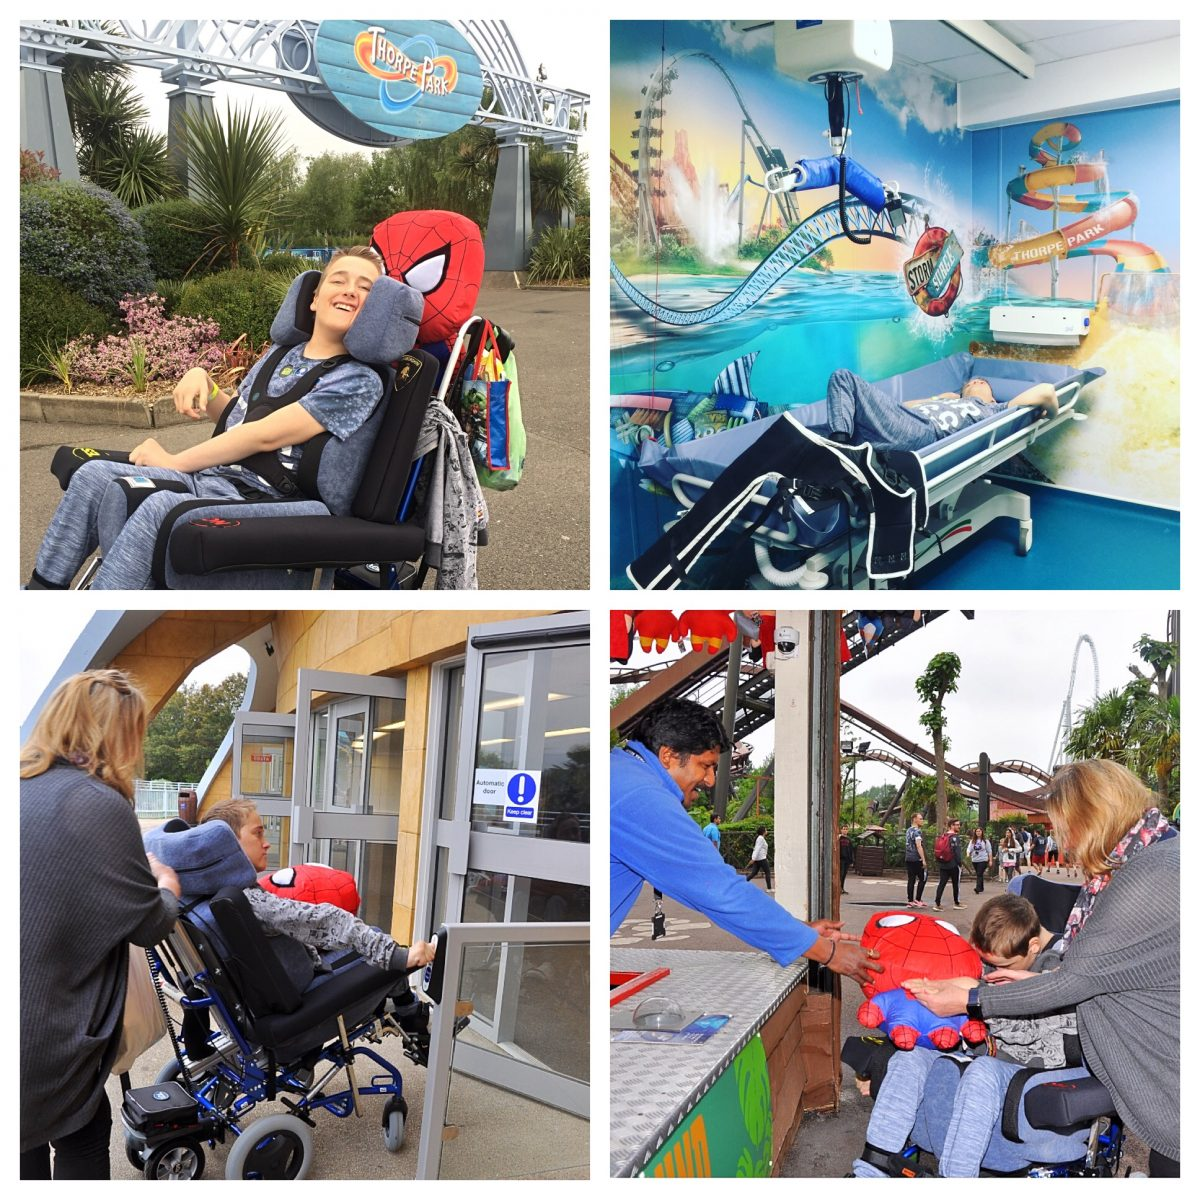 Assisted doors with a switch Level access Changingplace toilet  Only one ride 4D Angry birds but wheelchair users on